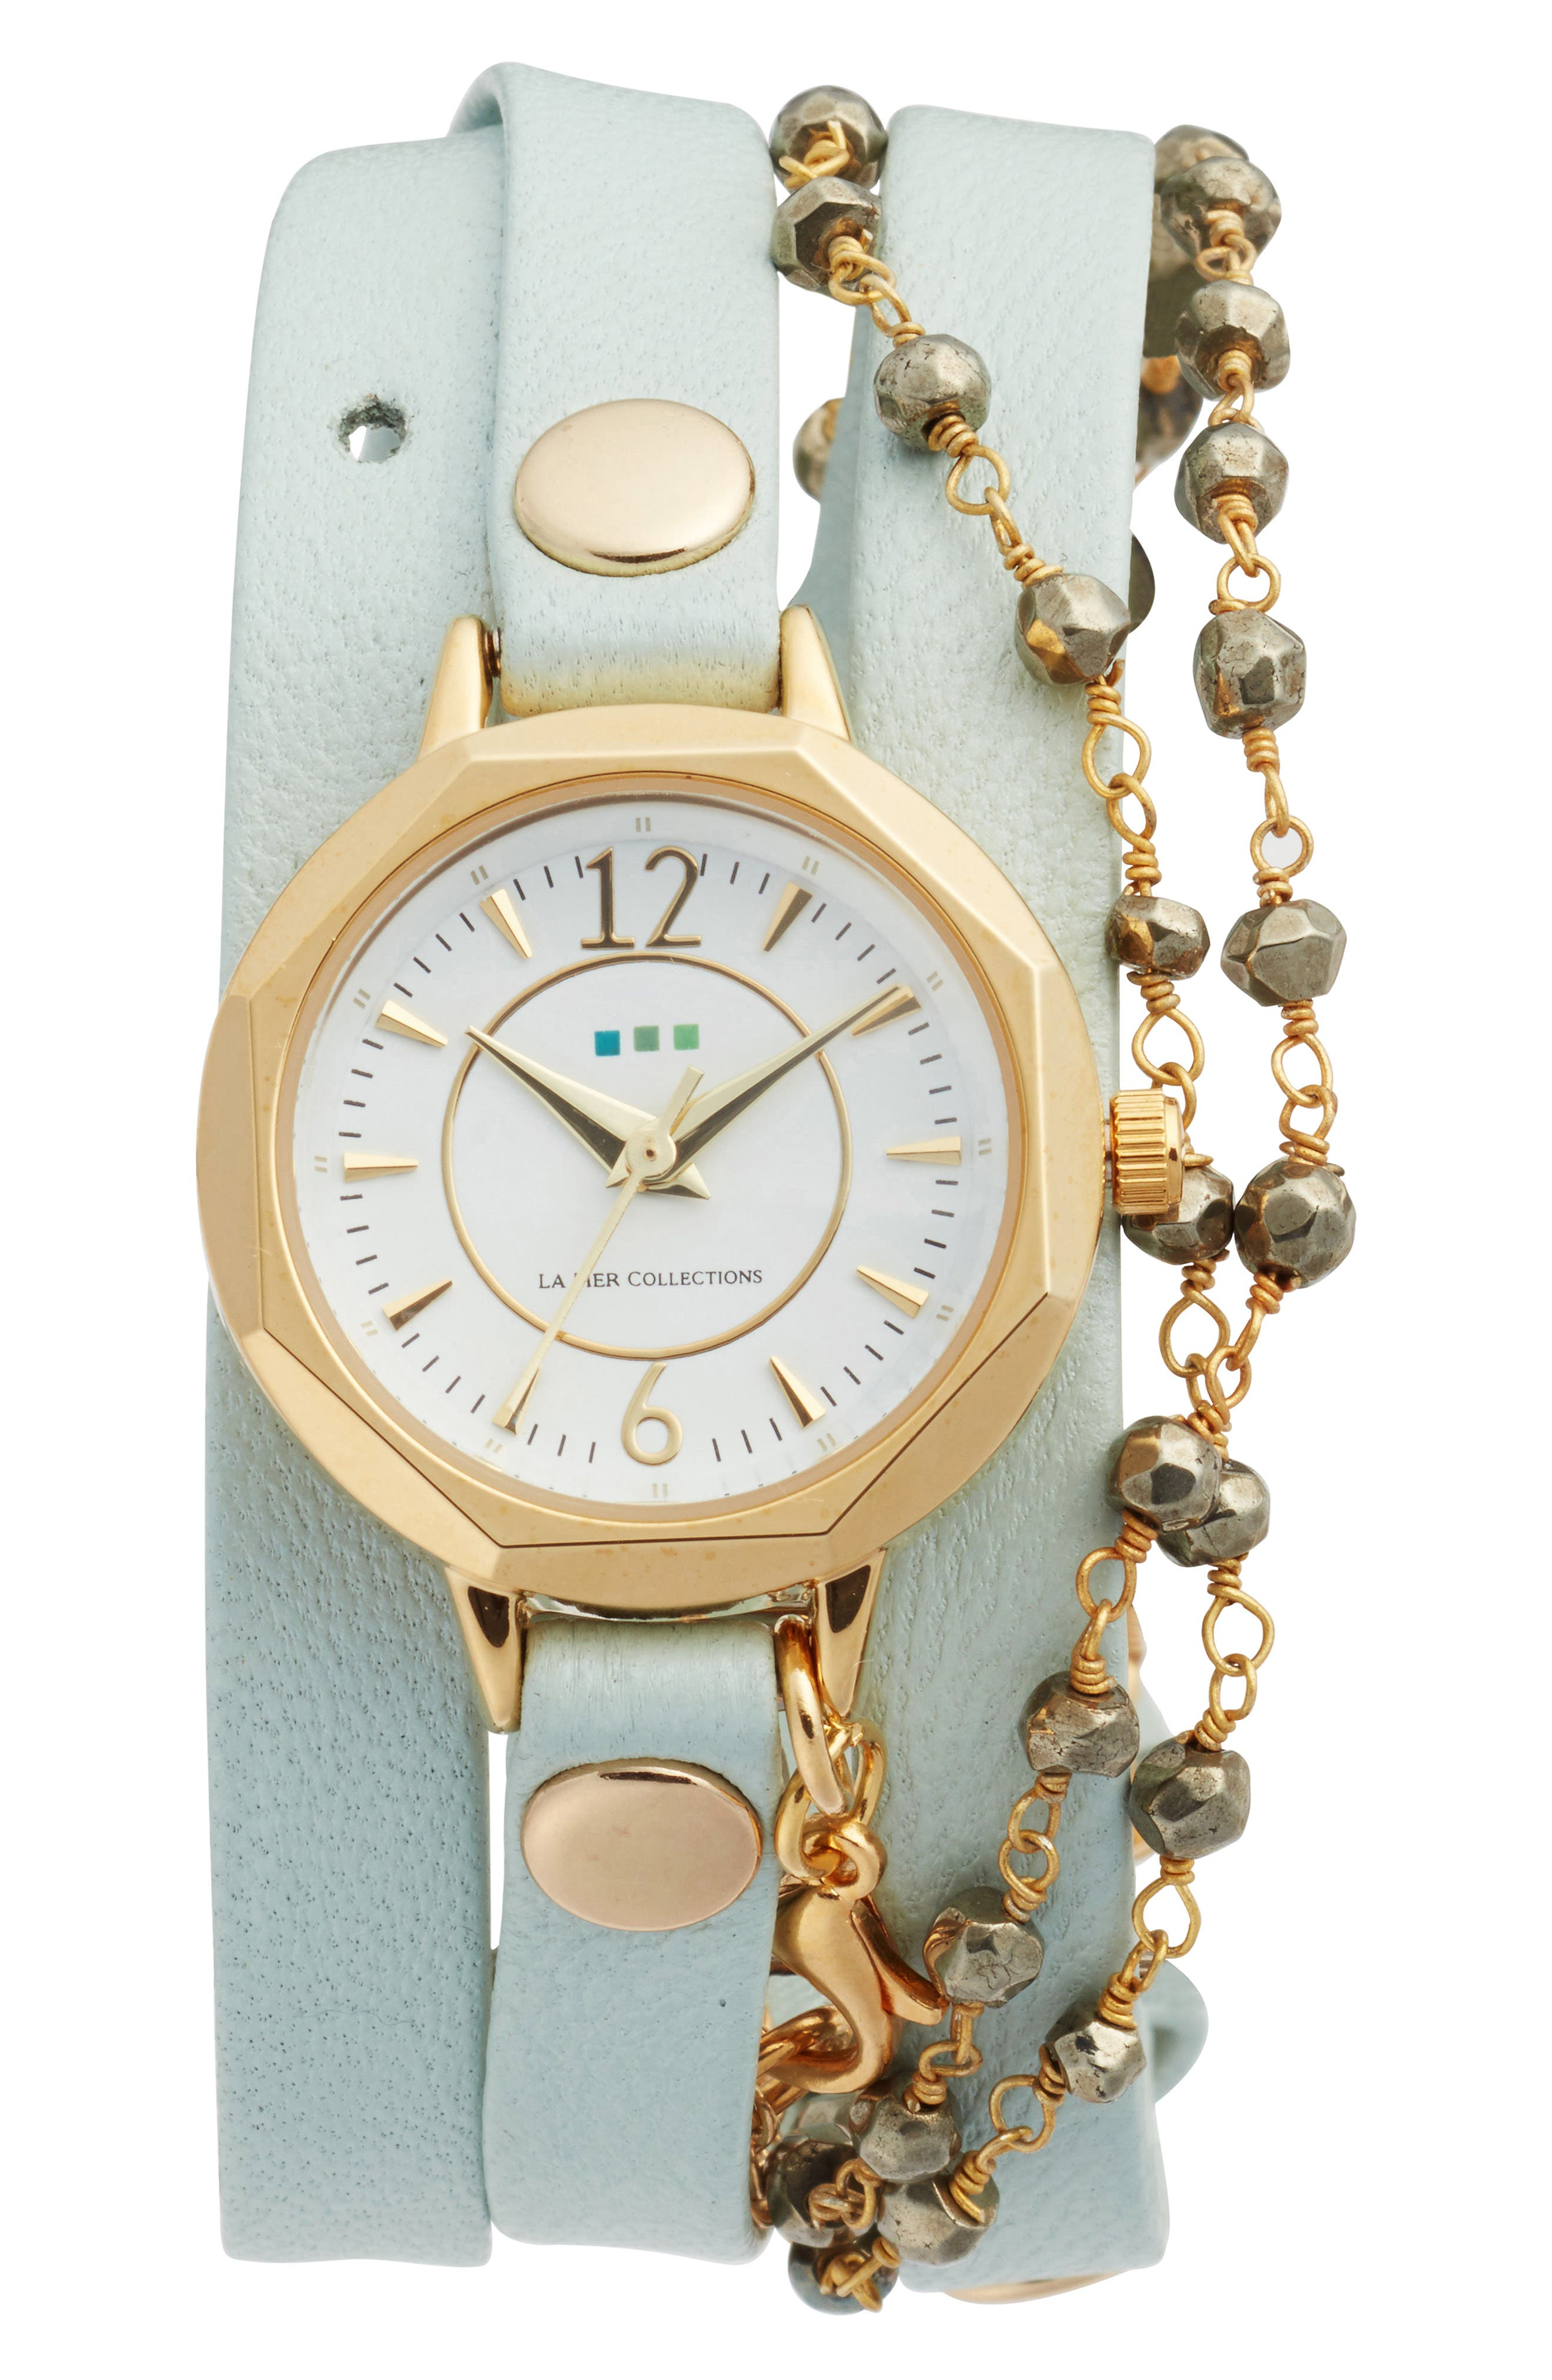 Alternate Image 1 Selected - La Mer Collections Perth Wrap Leather Strap Watch, 22mm